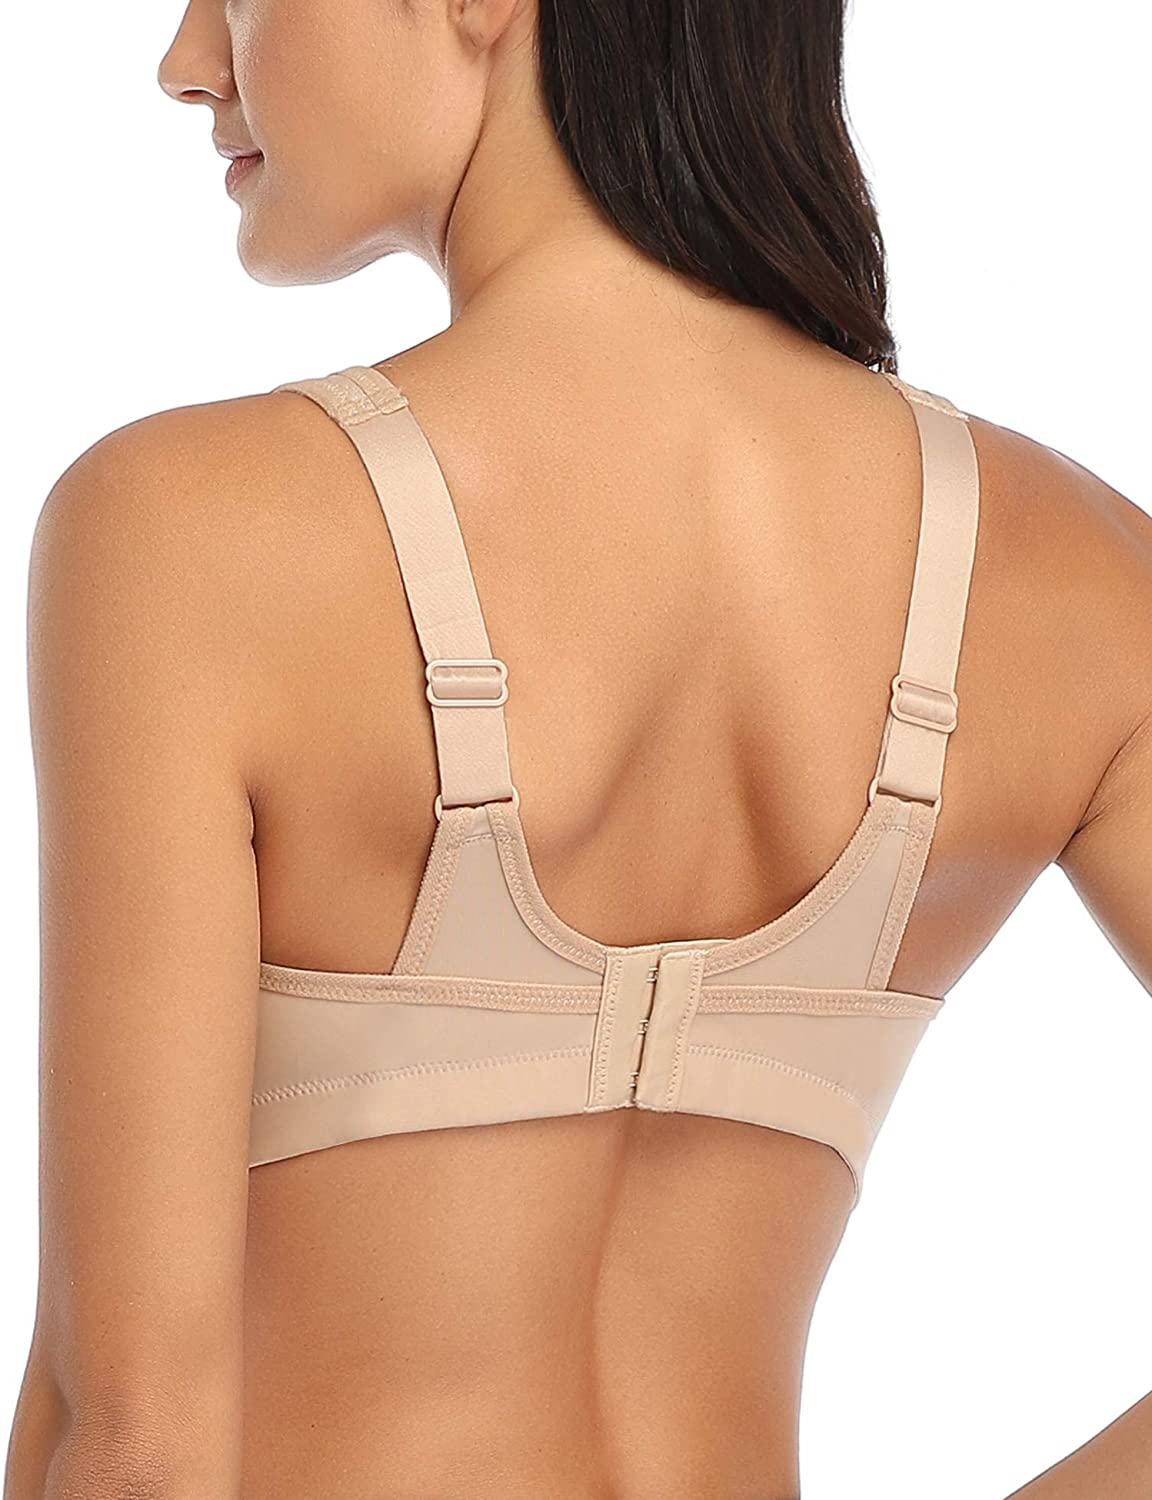 Wingslove Womens Sports Bra High Impact Full Coverage Supportive Workout Bra